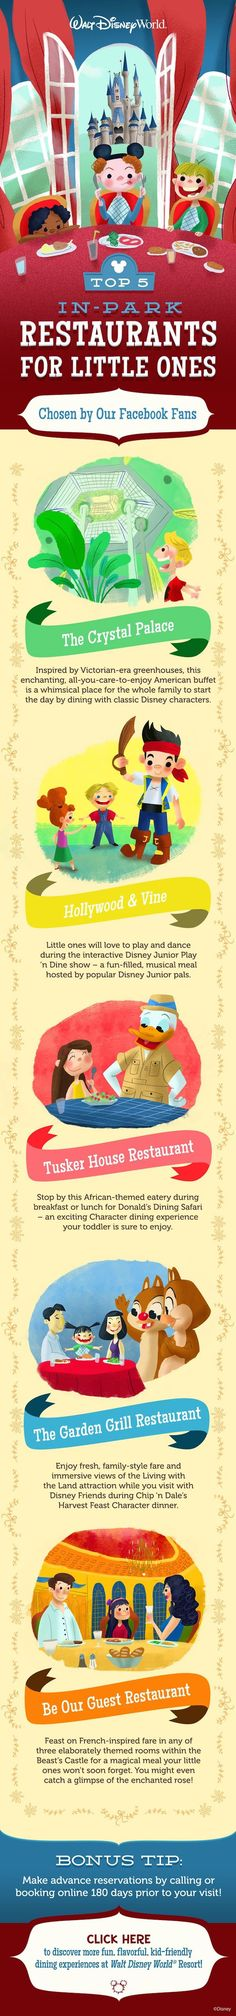 One of the most fun, and frankly easiest, ways to meet favorite Disney characters at Walt Disney World Resort is through themed character dining. Each park, and many resorts, offer a unique experience where families are immersed in the story of their beloved characters as they dine on delicious meals.